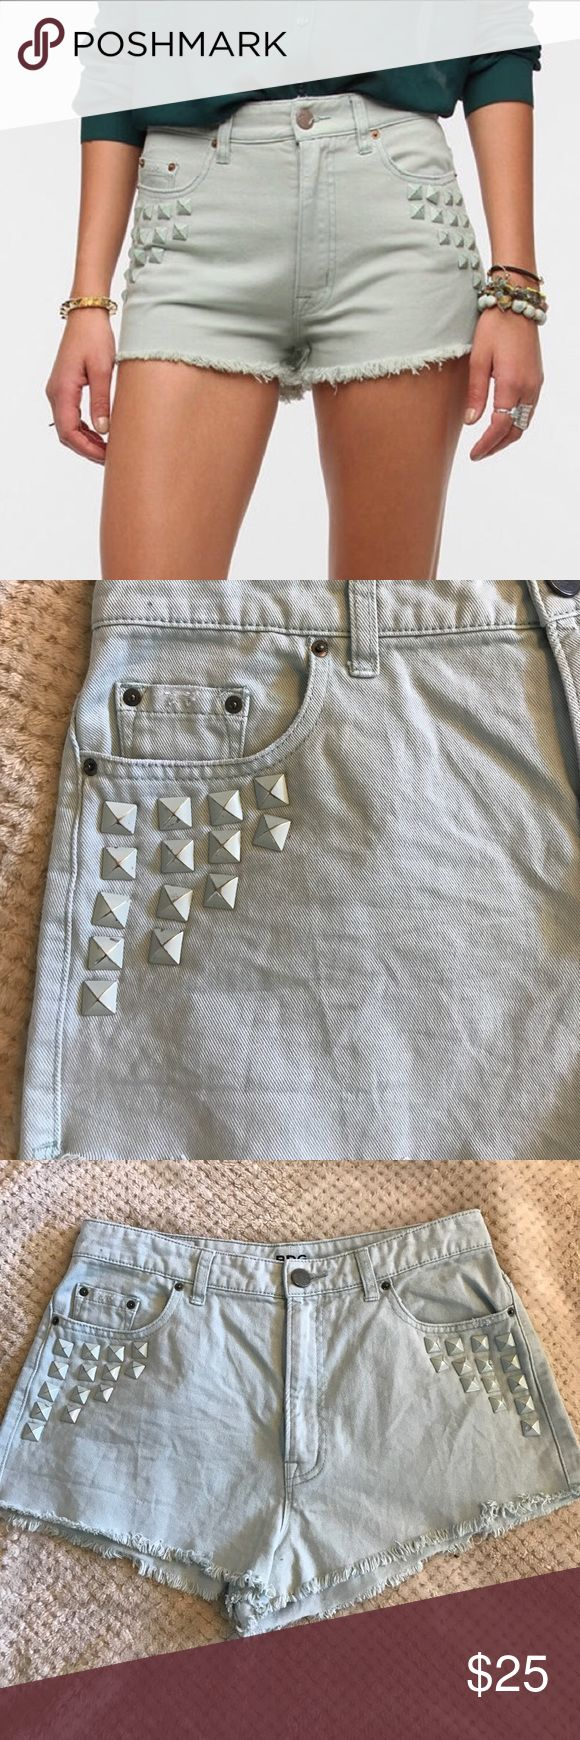 BDG High Rise Dree Cheeky Short Worn once and in excellent condition. Adorable shorts from Urban Outfitters that are perfect for a hot summer day. Looks great with white tops! From a smoke free home. Urban Outfitters Shorts Jean Shorts